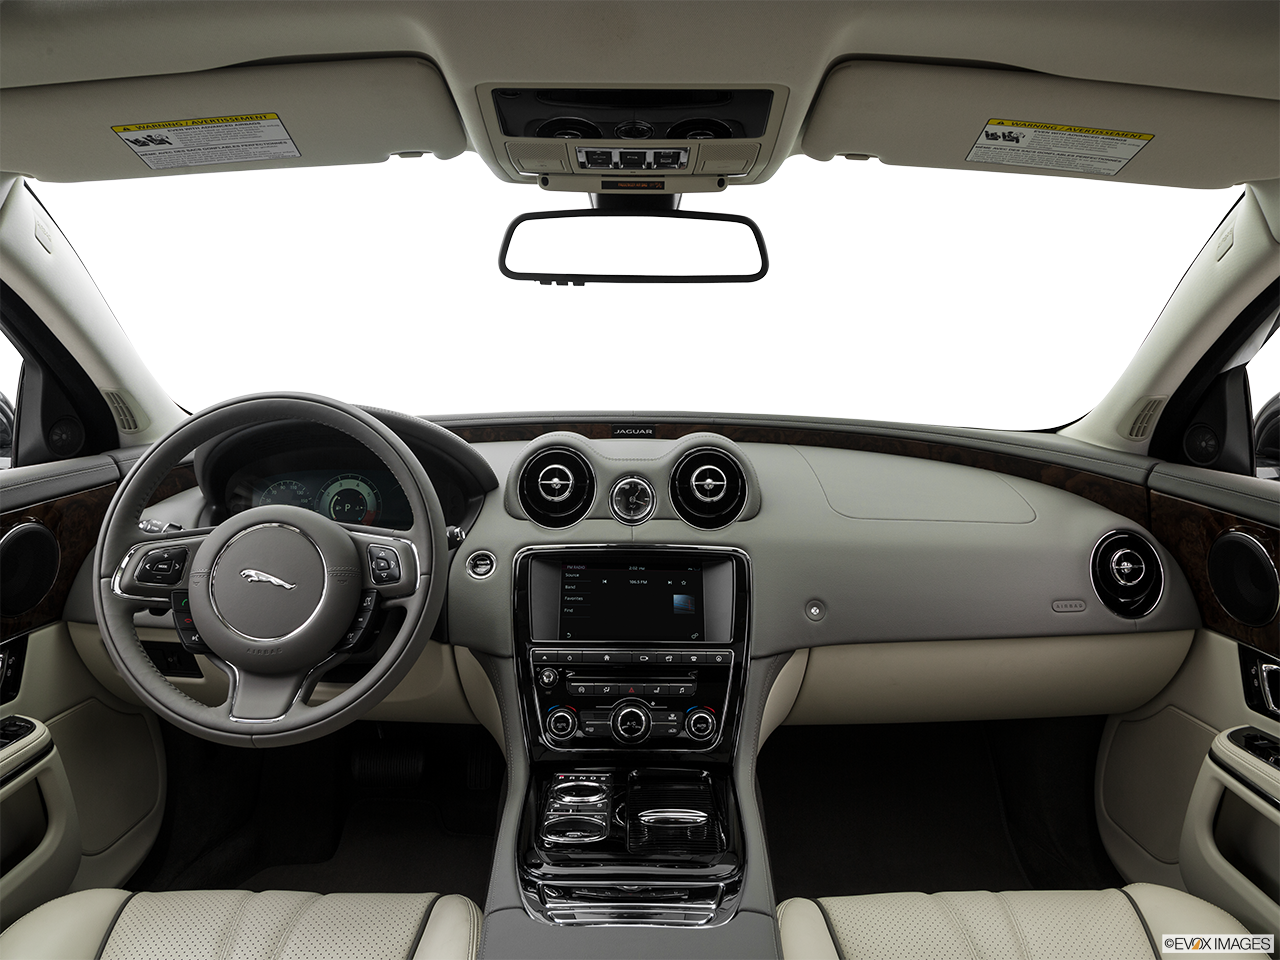 Interior View Of 2016 Jaguar XJ in Los Angeles